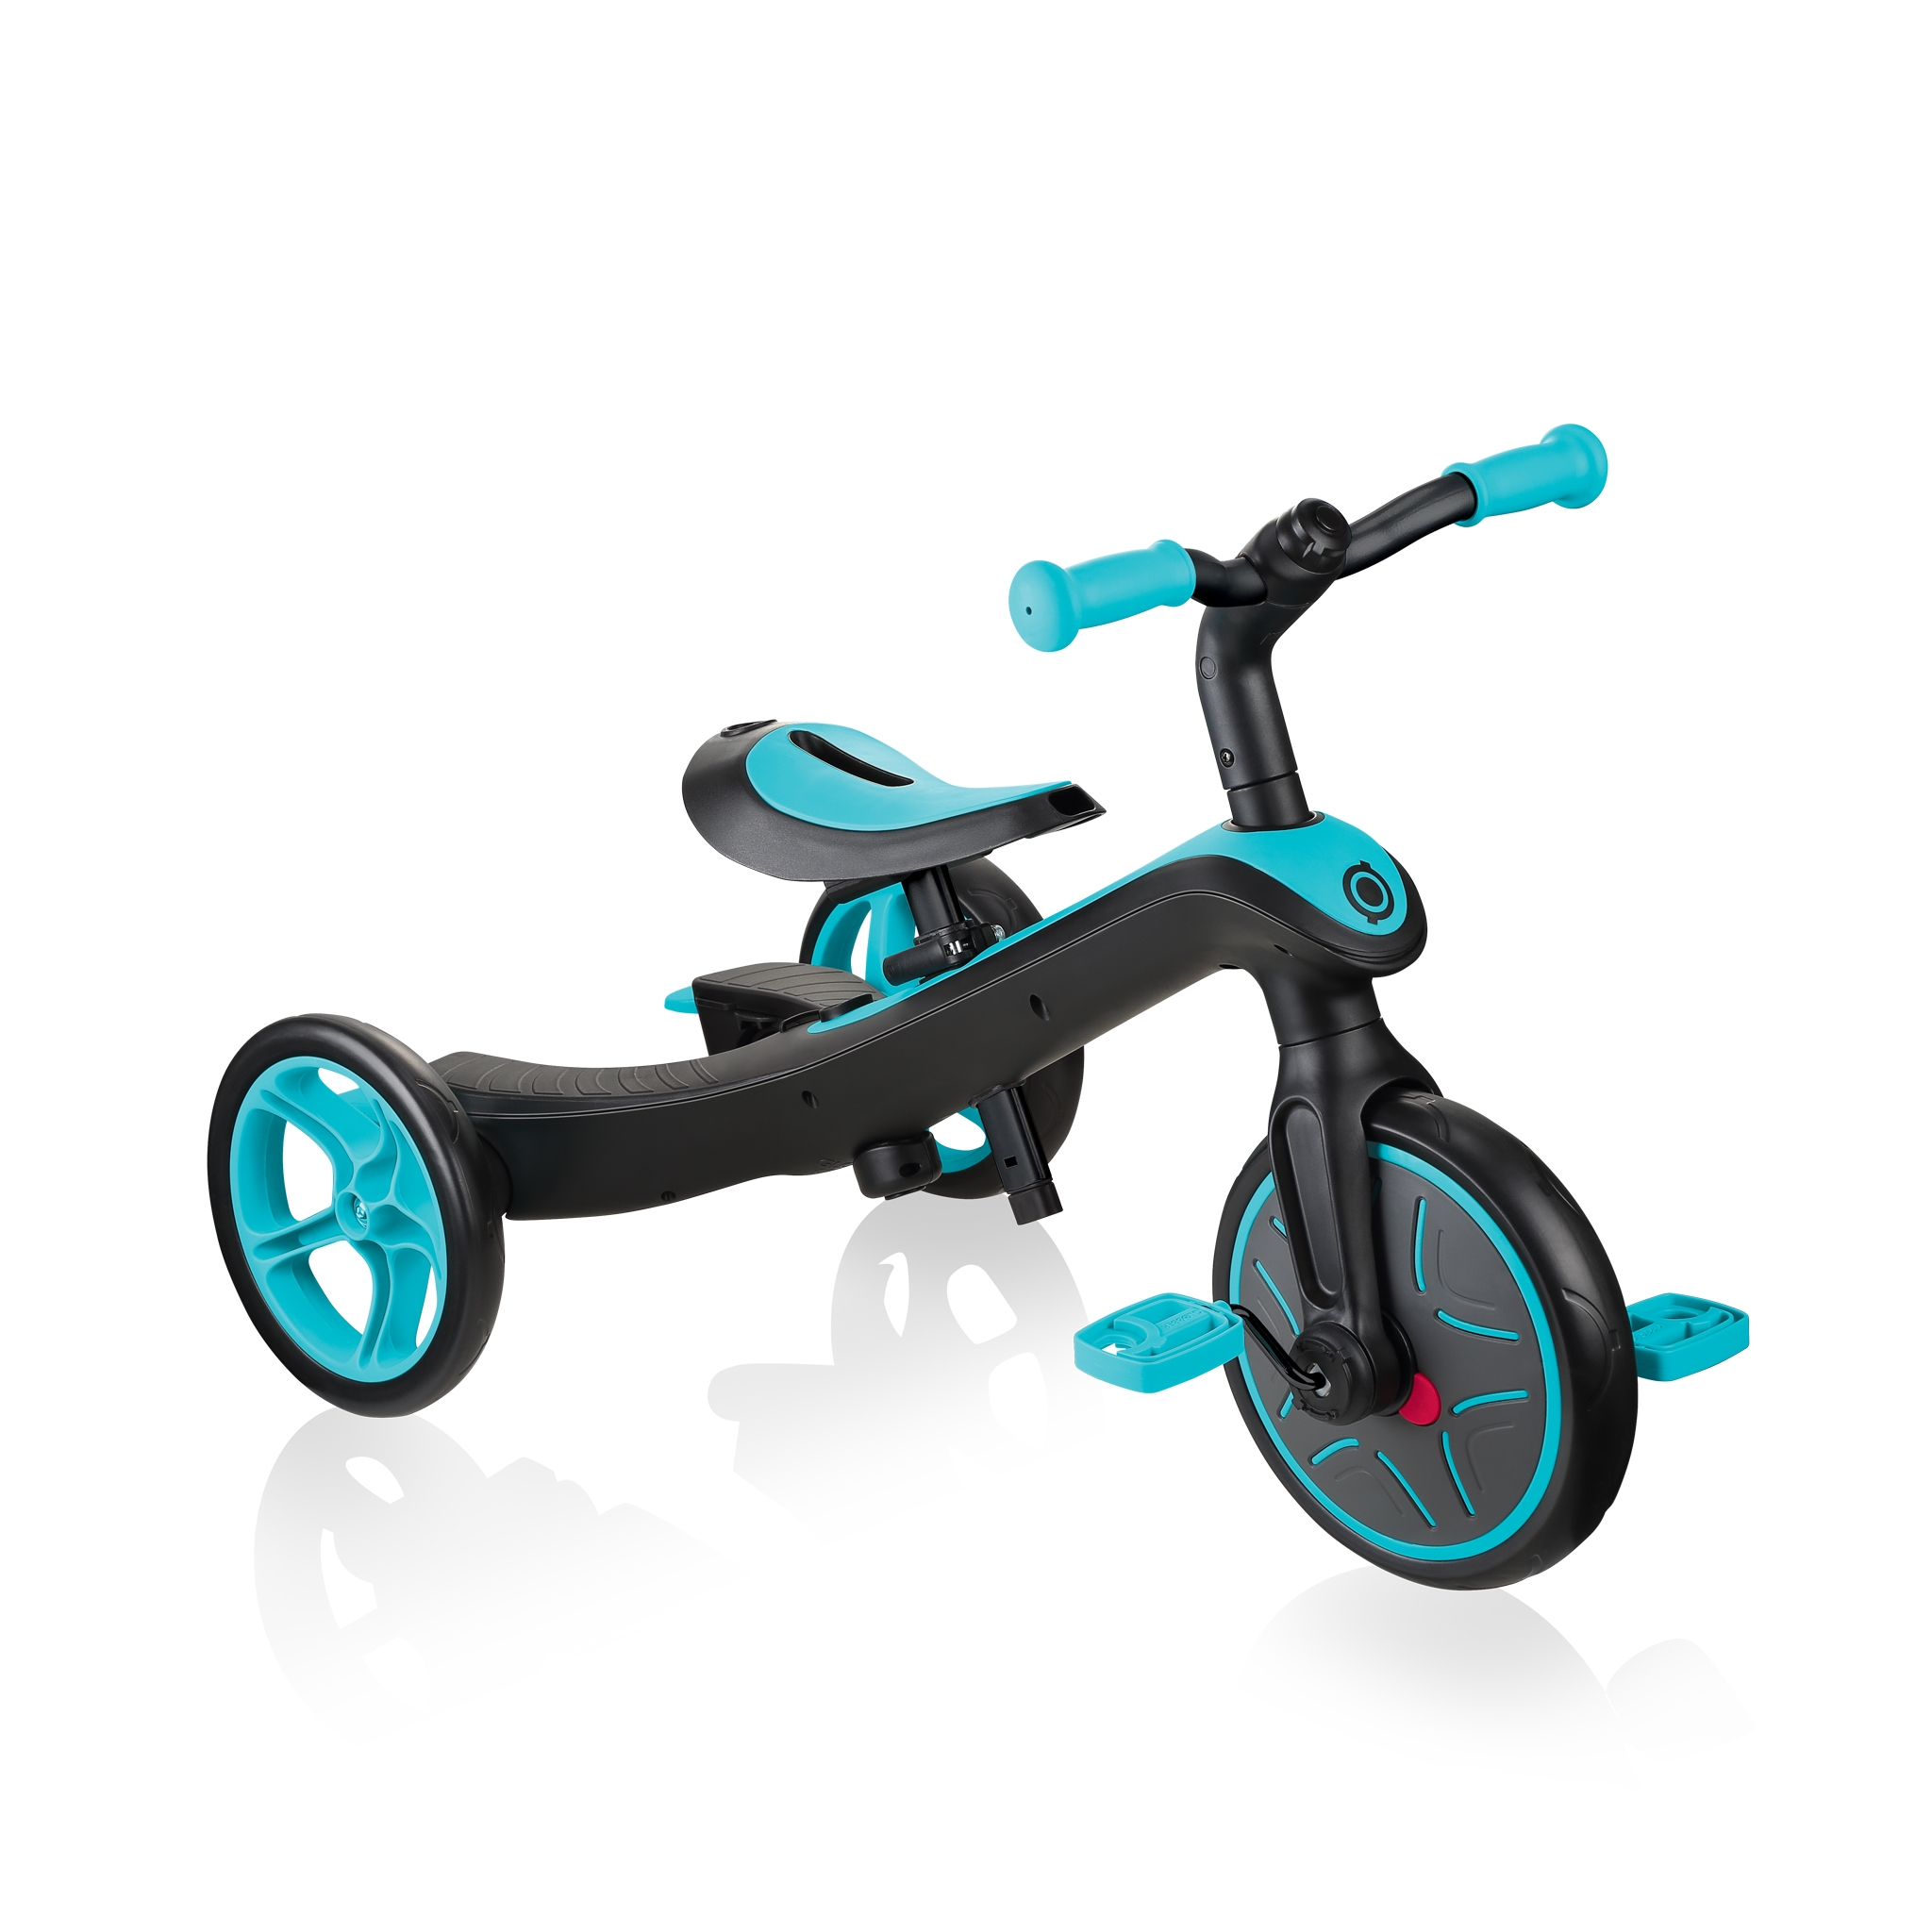 Globber-EXPLORER-TRIKE-3in1-all-in-one-baby-tricycle-and-kids-balance-bike-stage-2-training-trike_teal 1